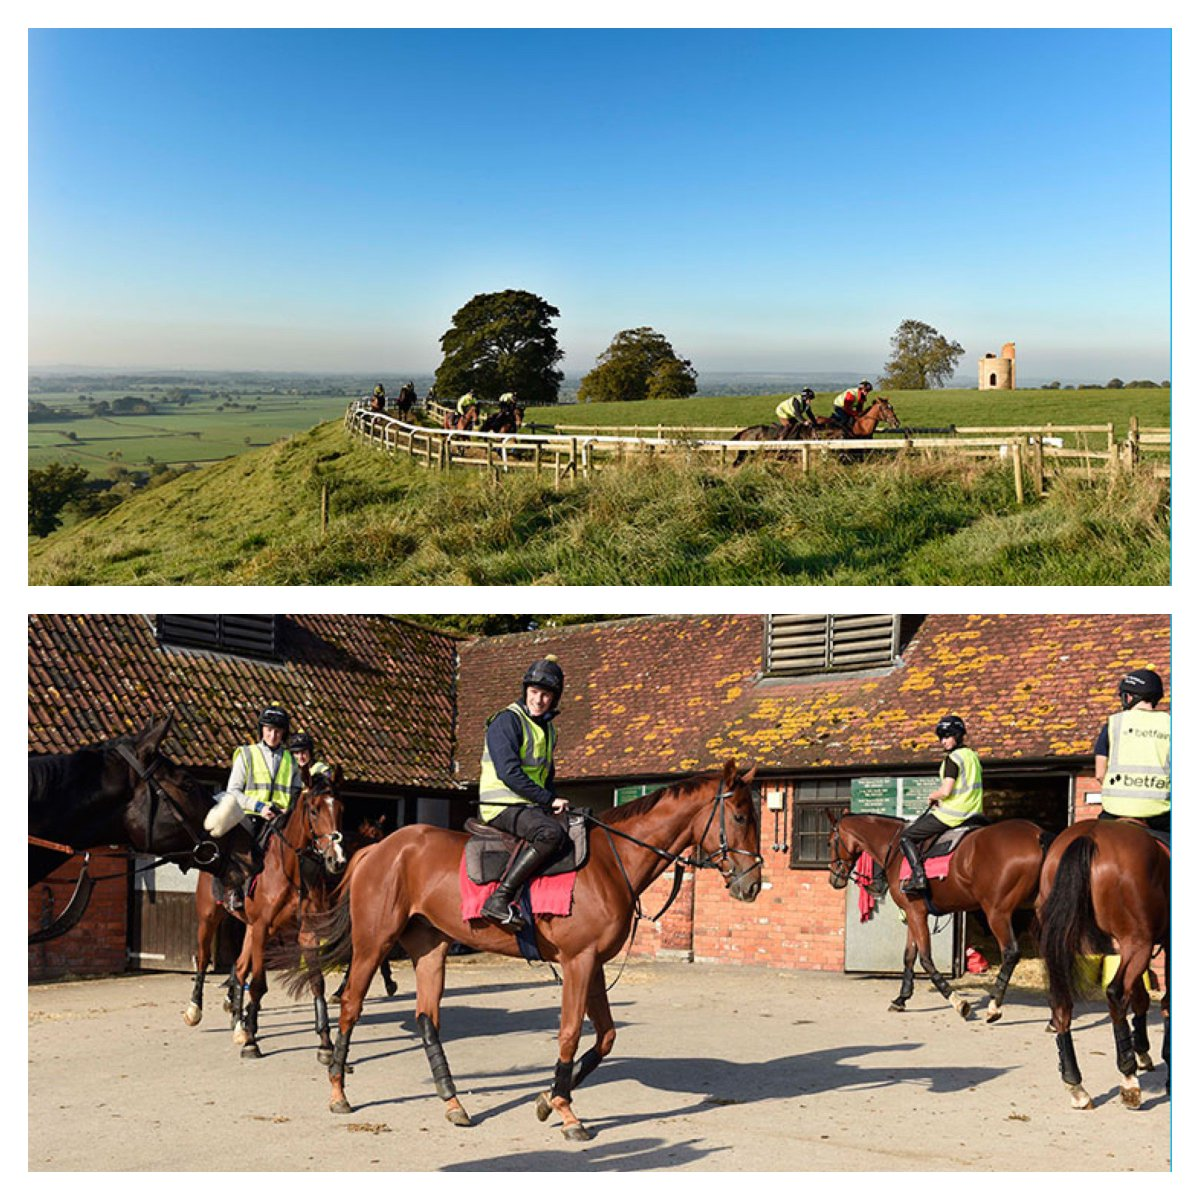 Champion Trainer @PFNicholls seeks experienced stable staff to join his team. Find out more https://t.co/XLEGtD5CaA https://t.co/KlvmDxnfDW